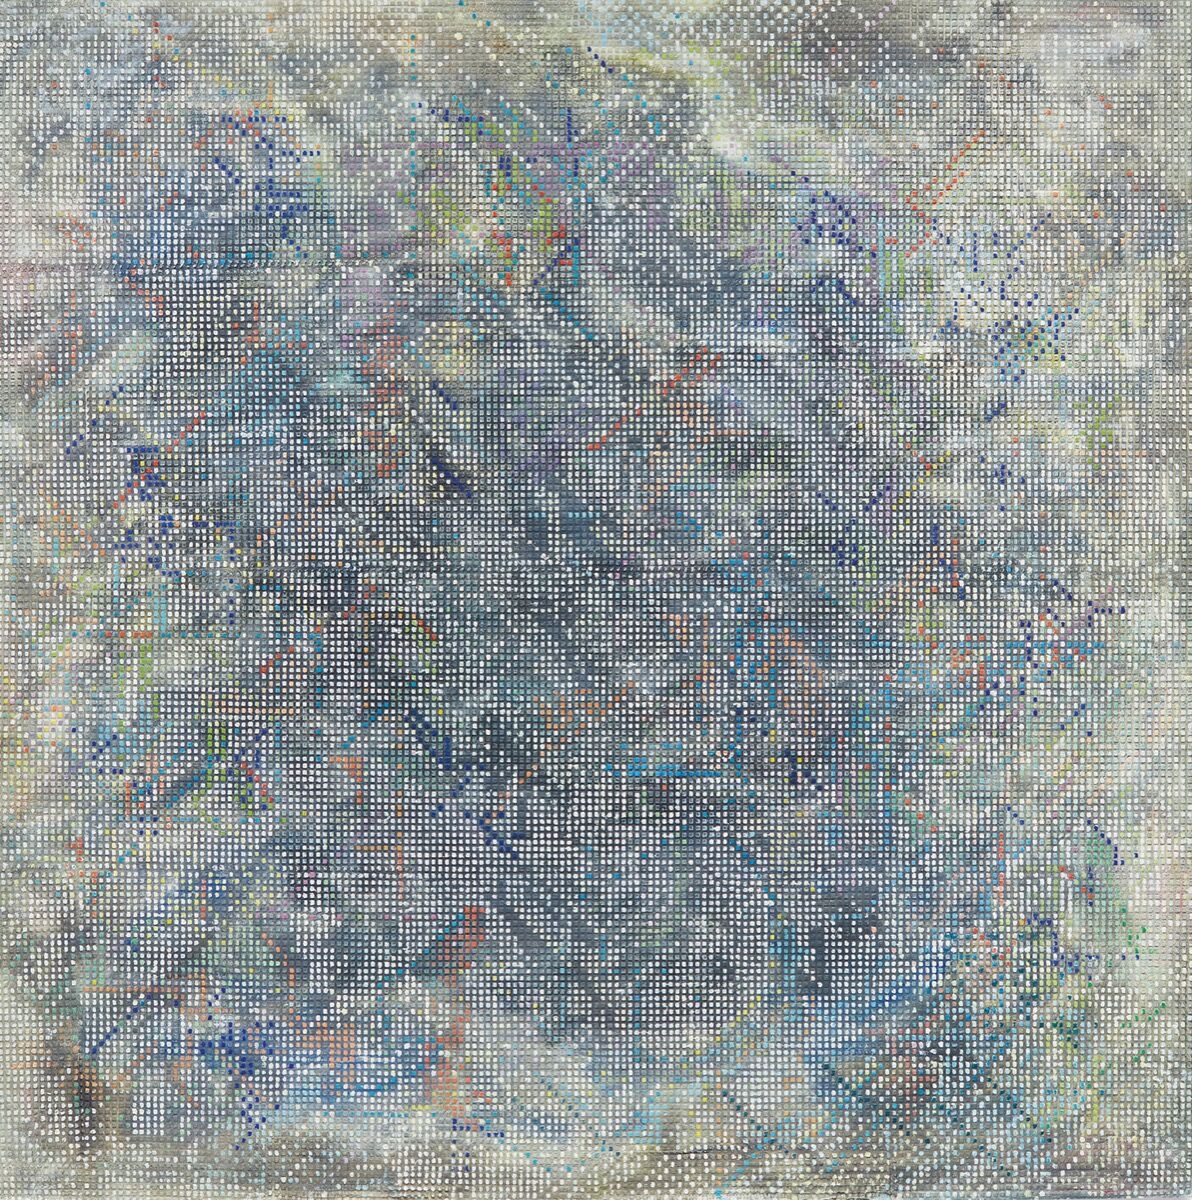 Jack Whitten, Ancient Mentor I, 1985. Courtesy of Sotheby's.